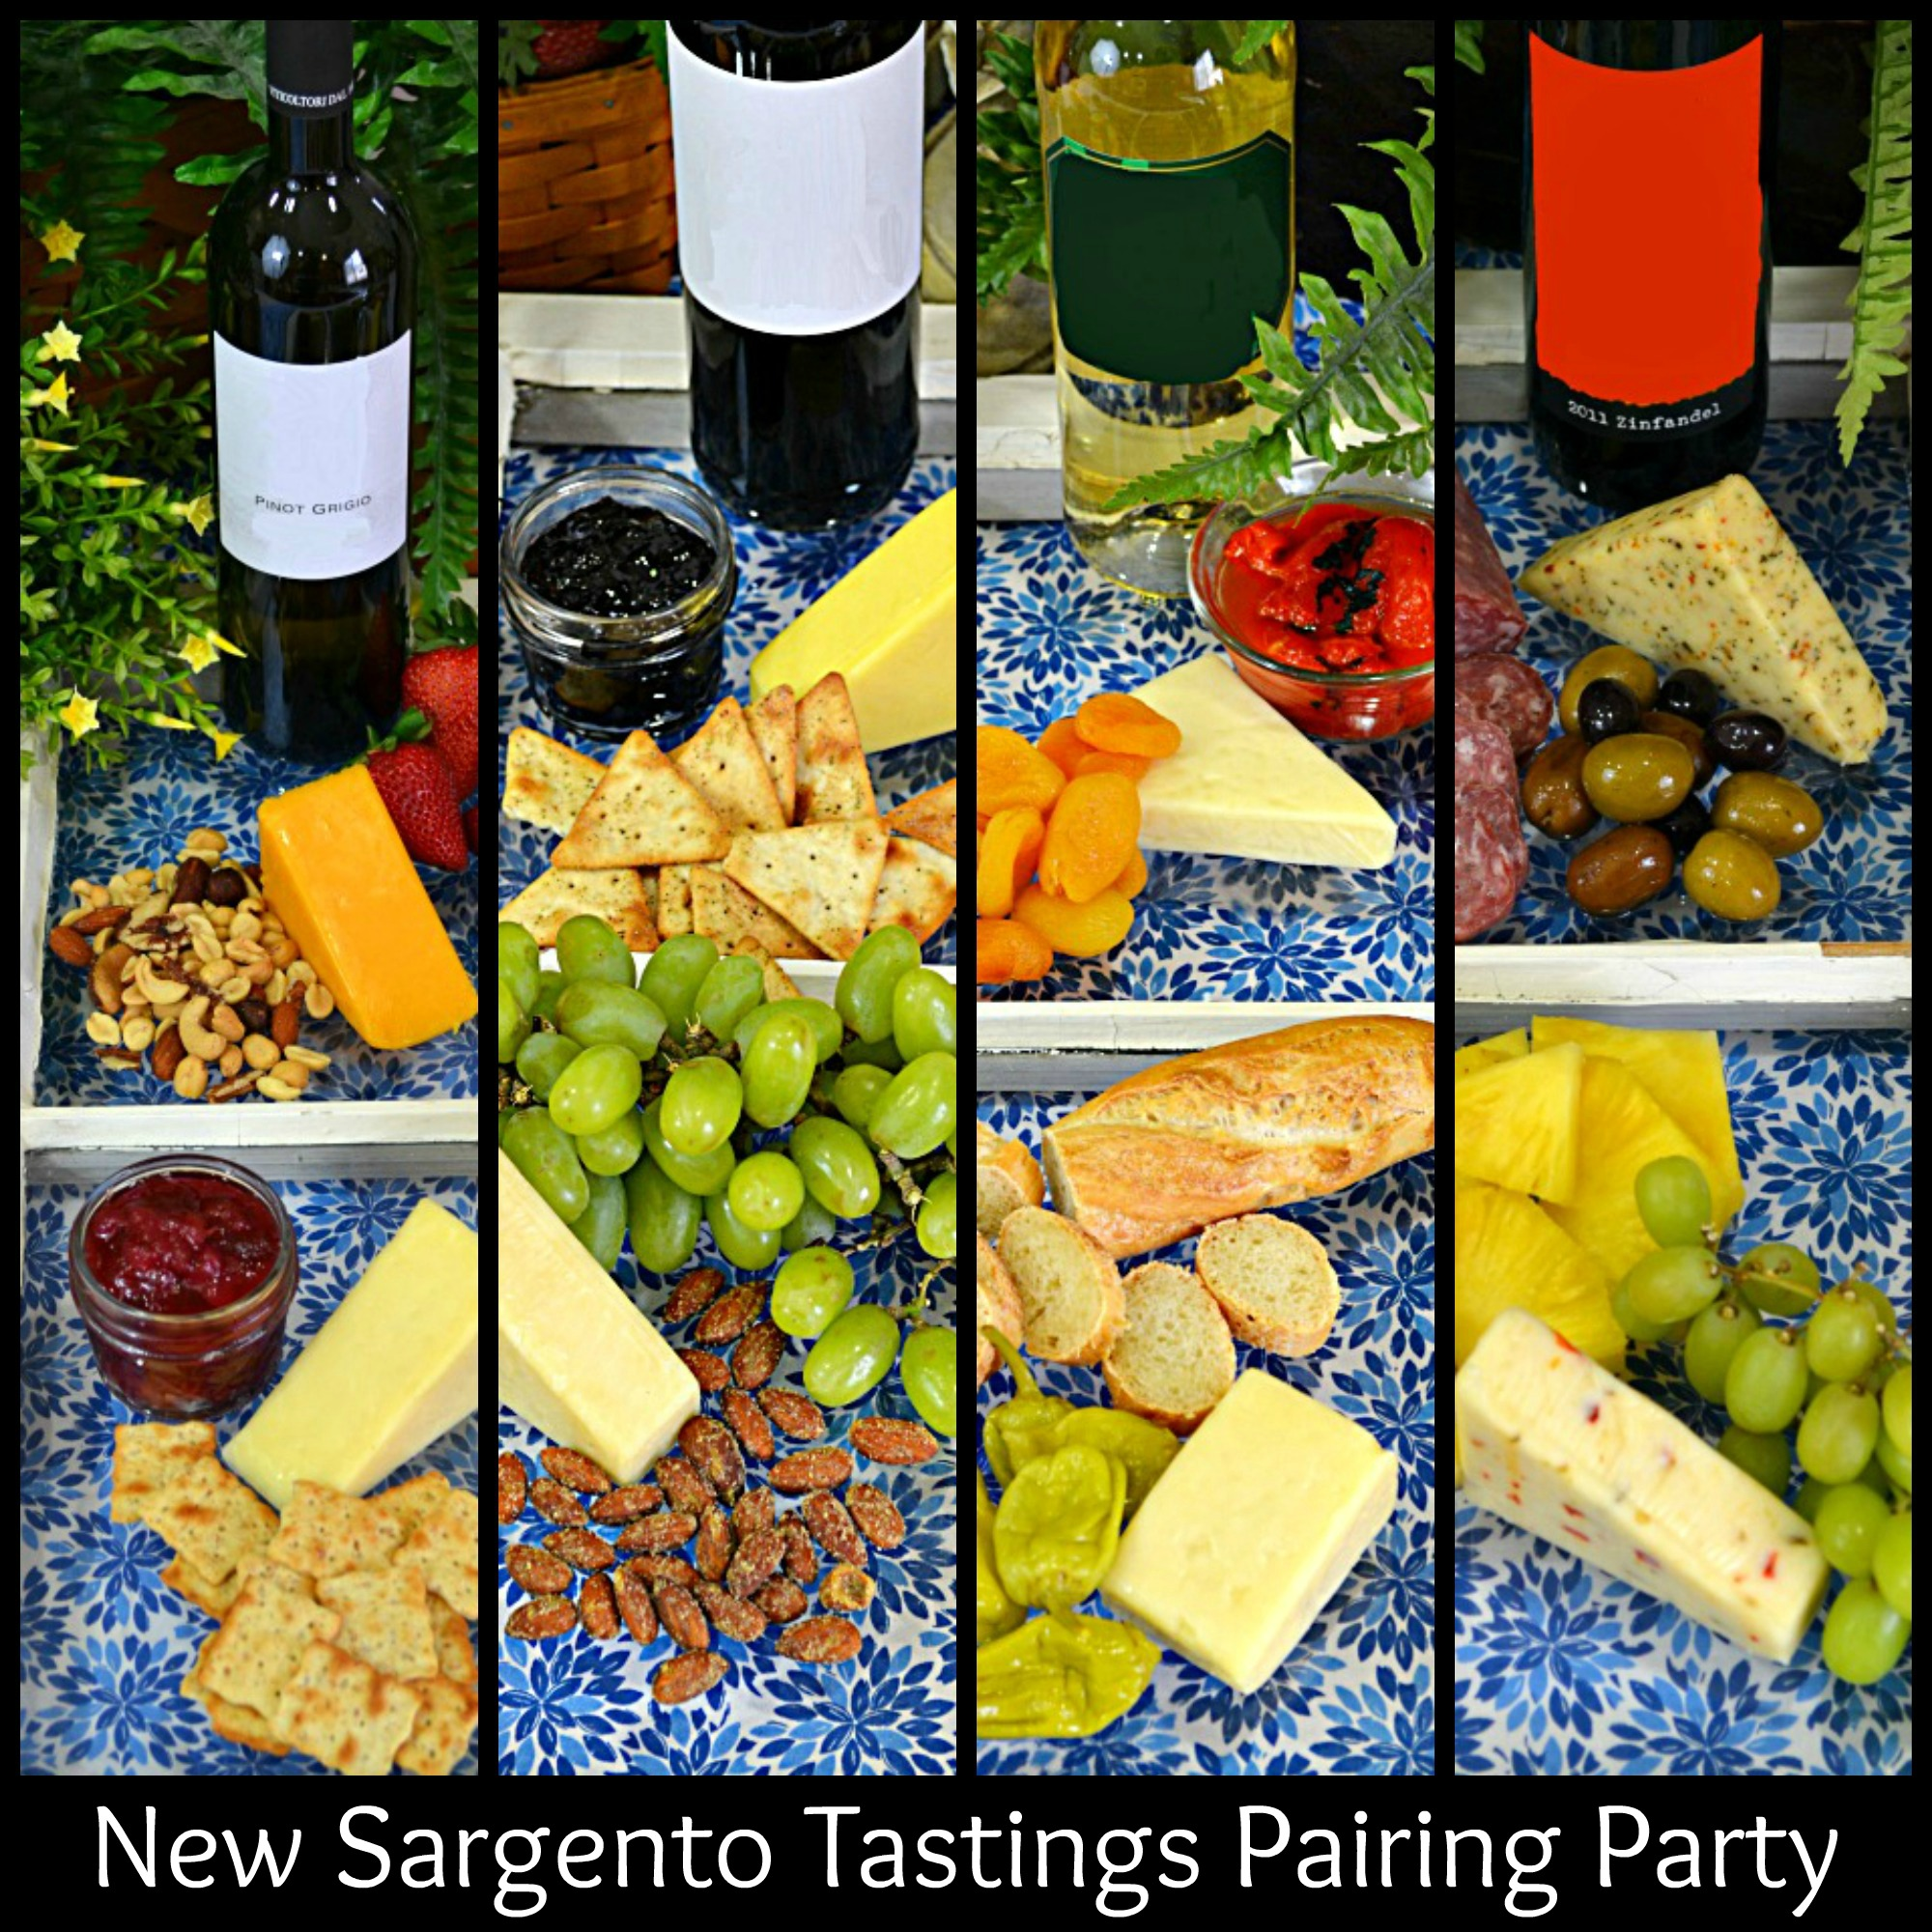 New Sargento Tastings Pairing Party - Lady Behind The Curtain 15